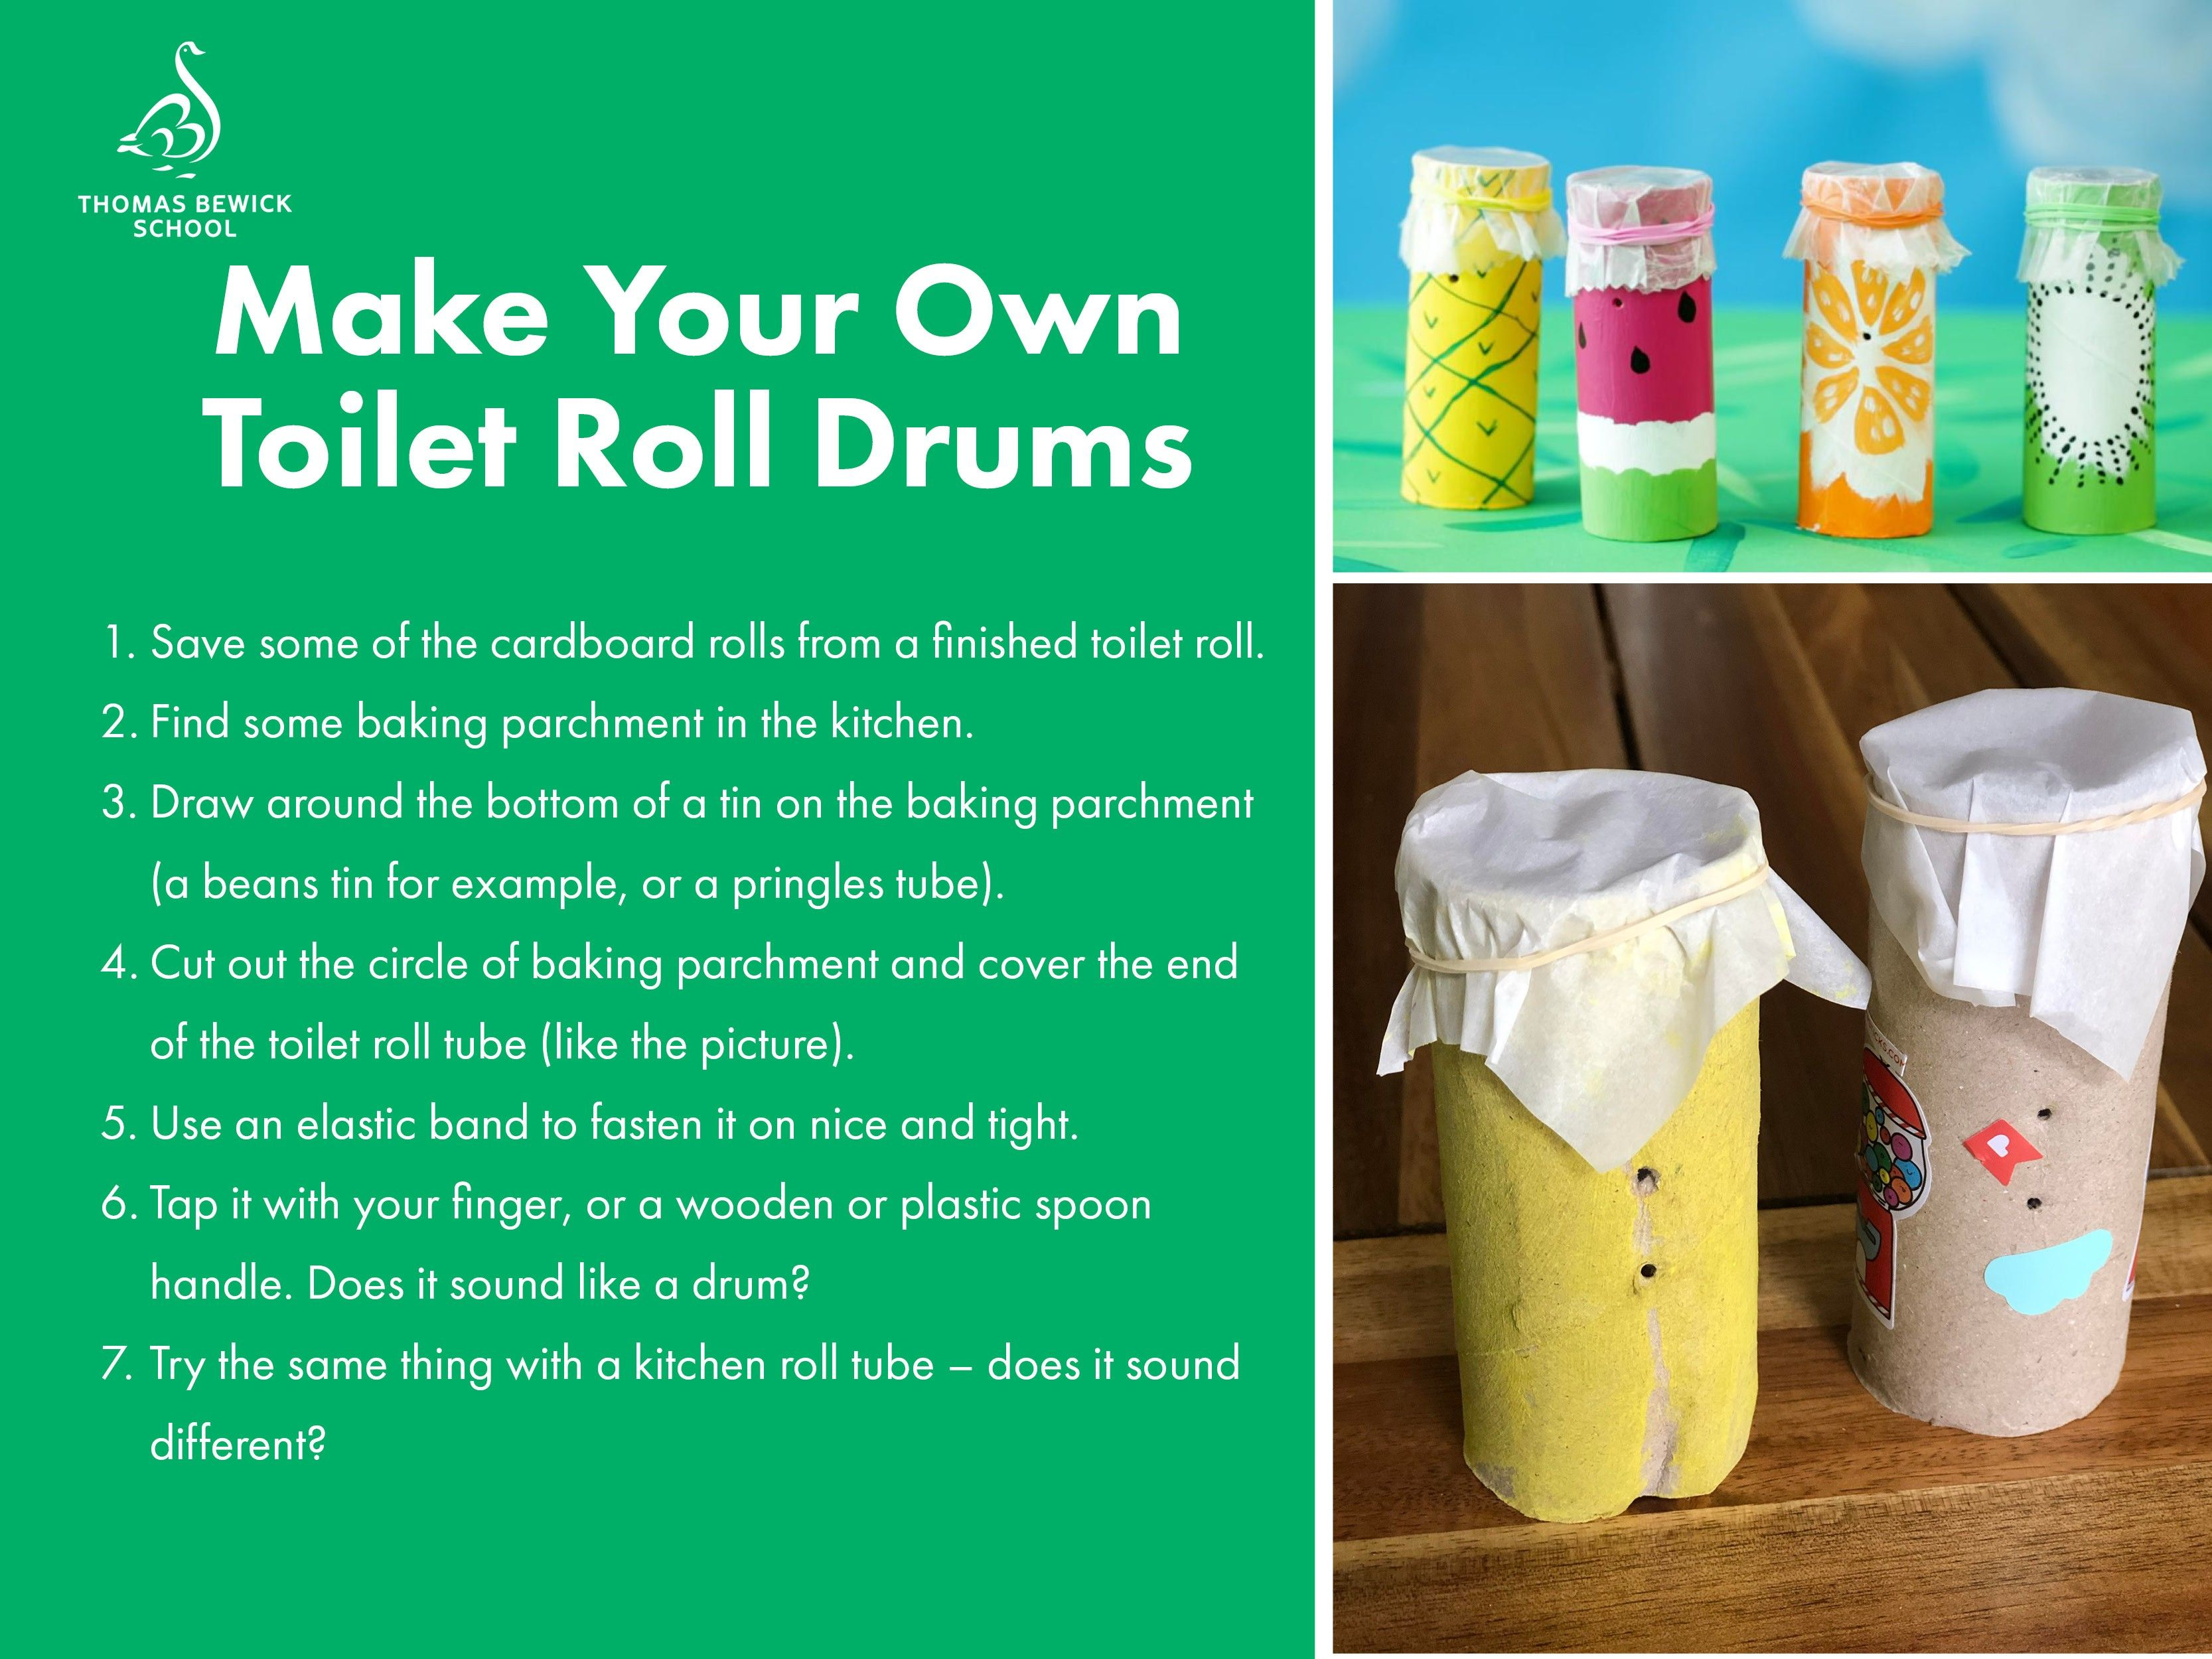 Make Your Own Toilet Roll Drums